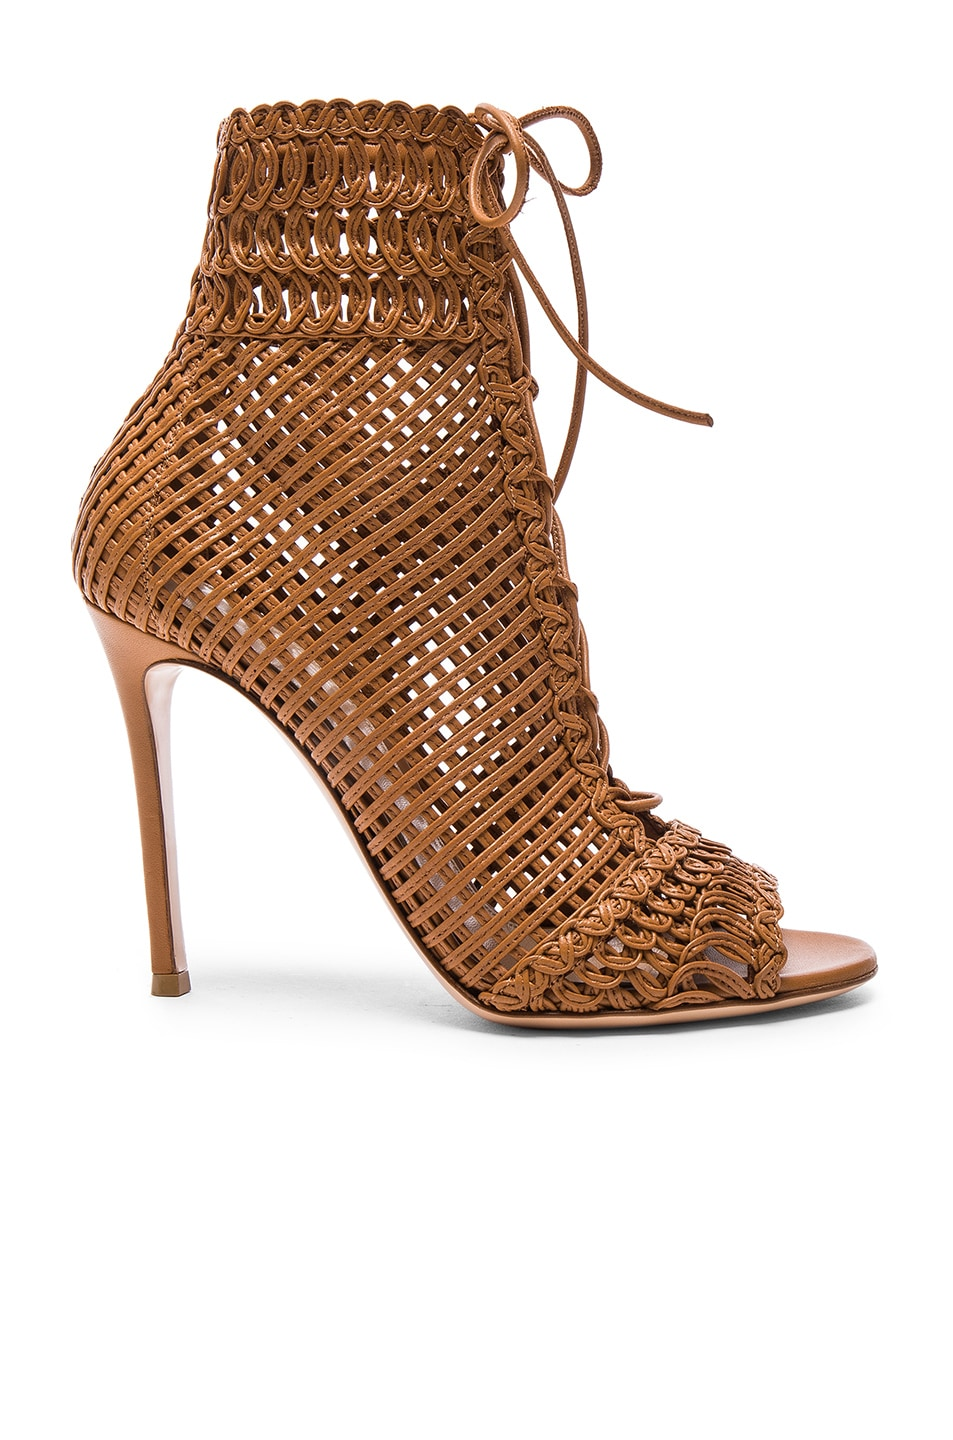 Gianvito Rossi Leathers Woven Leather Booties